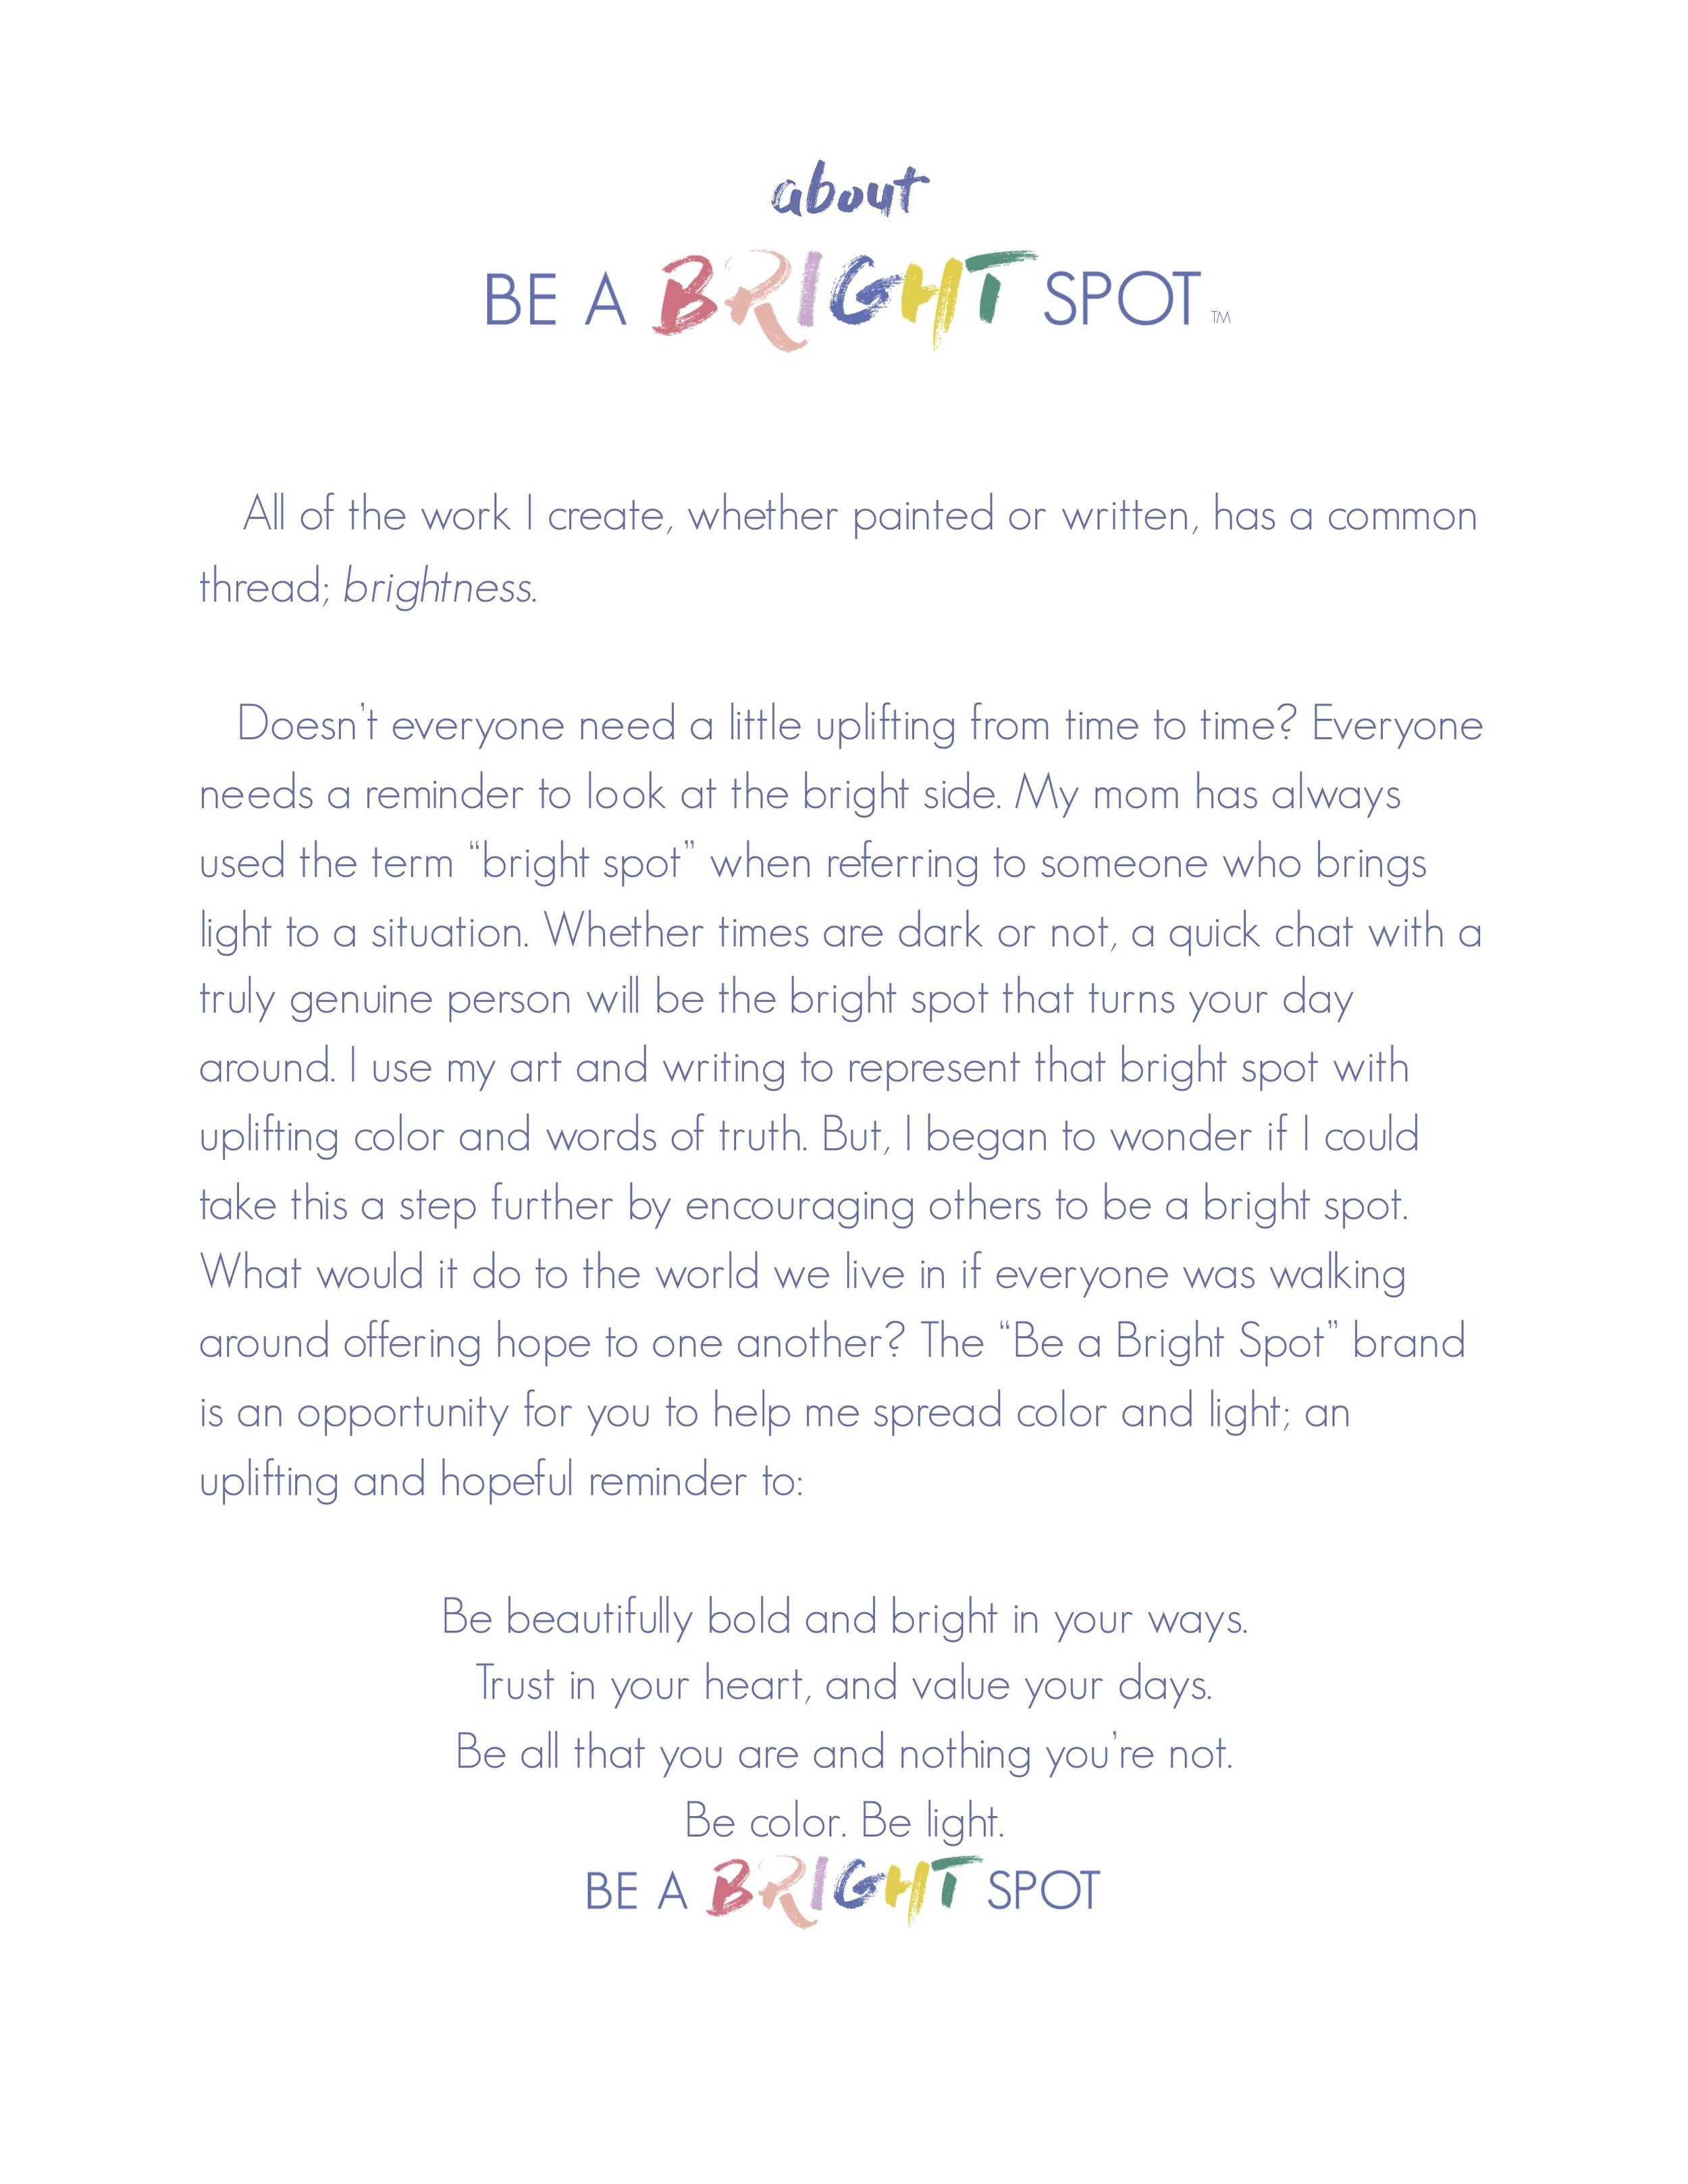 what is BE A BRIGHT SPOT copy.jpg